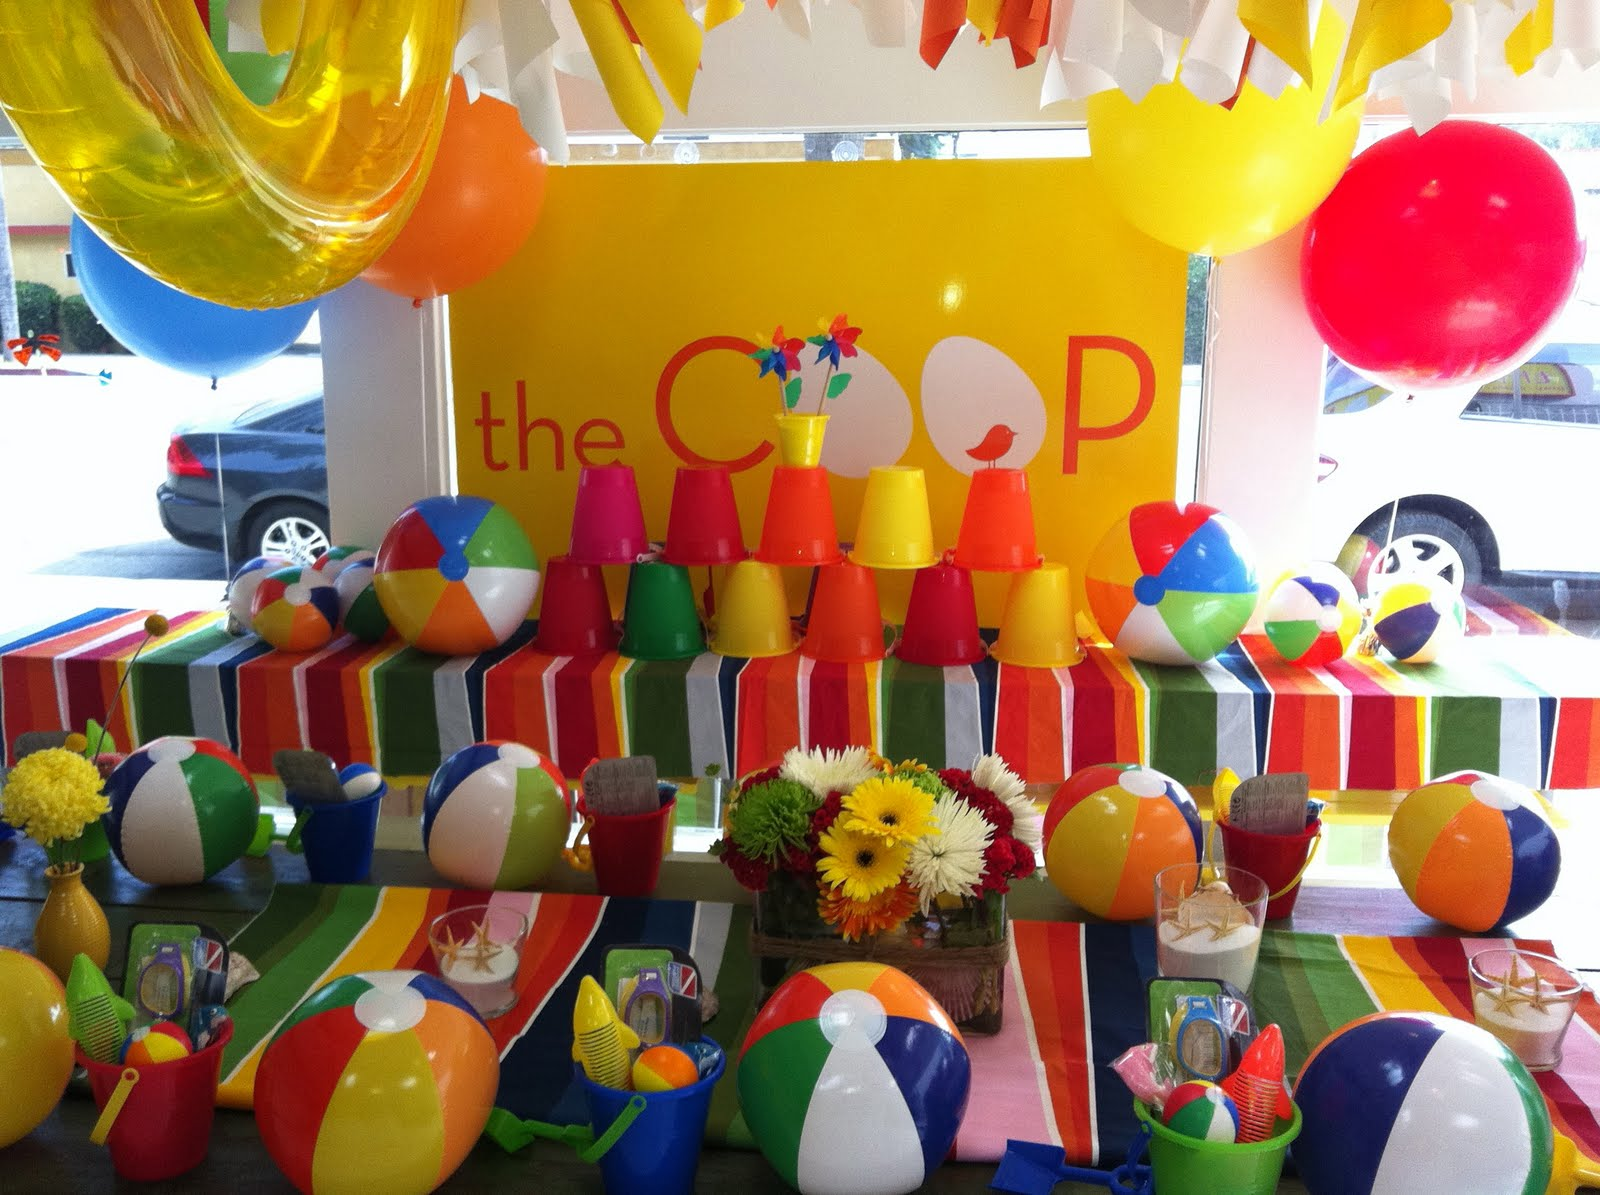 The COOP: SUMMER BEACH BALL PARTY